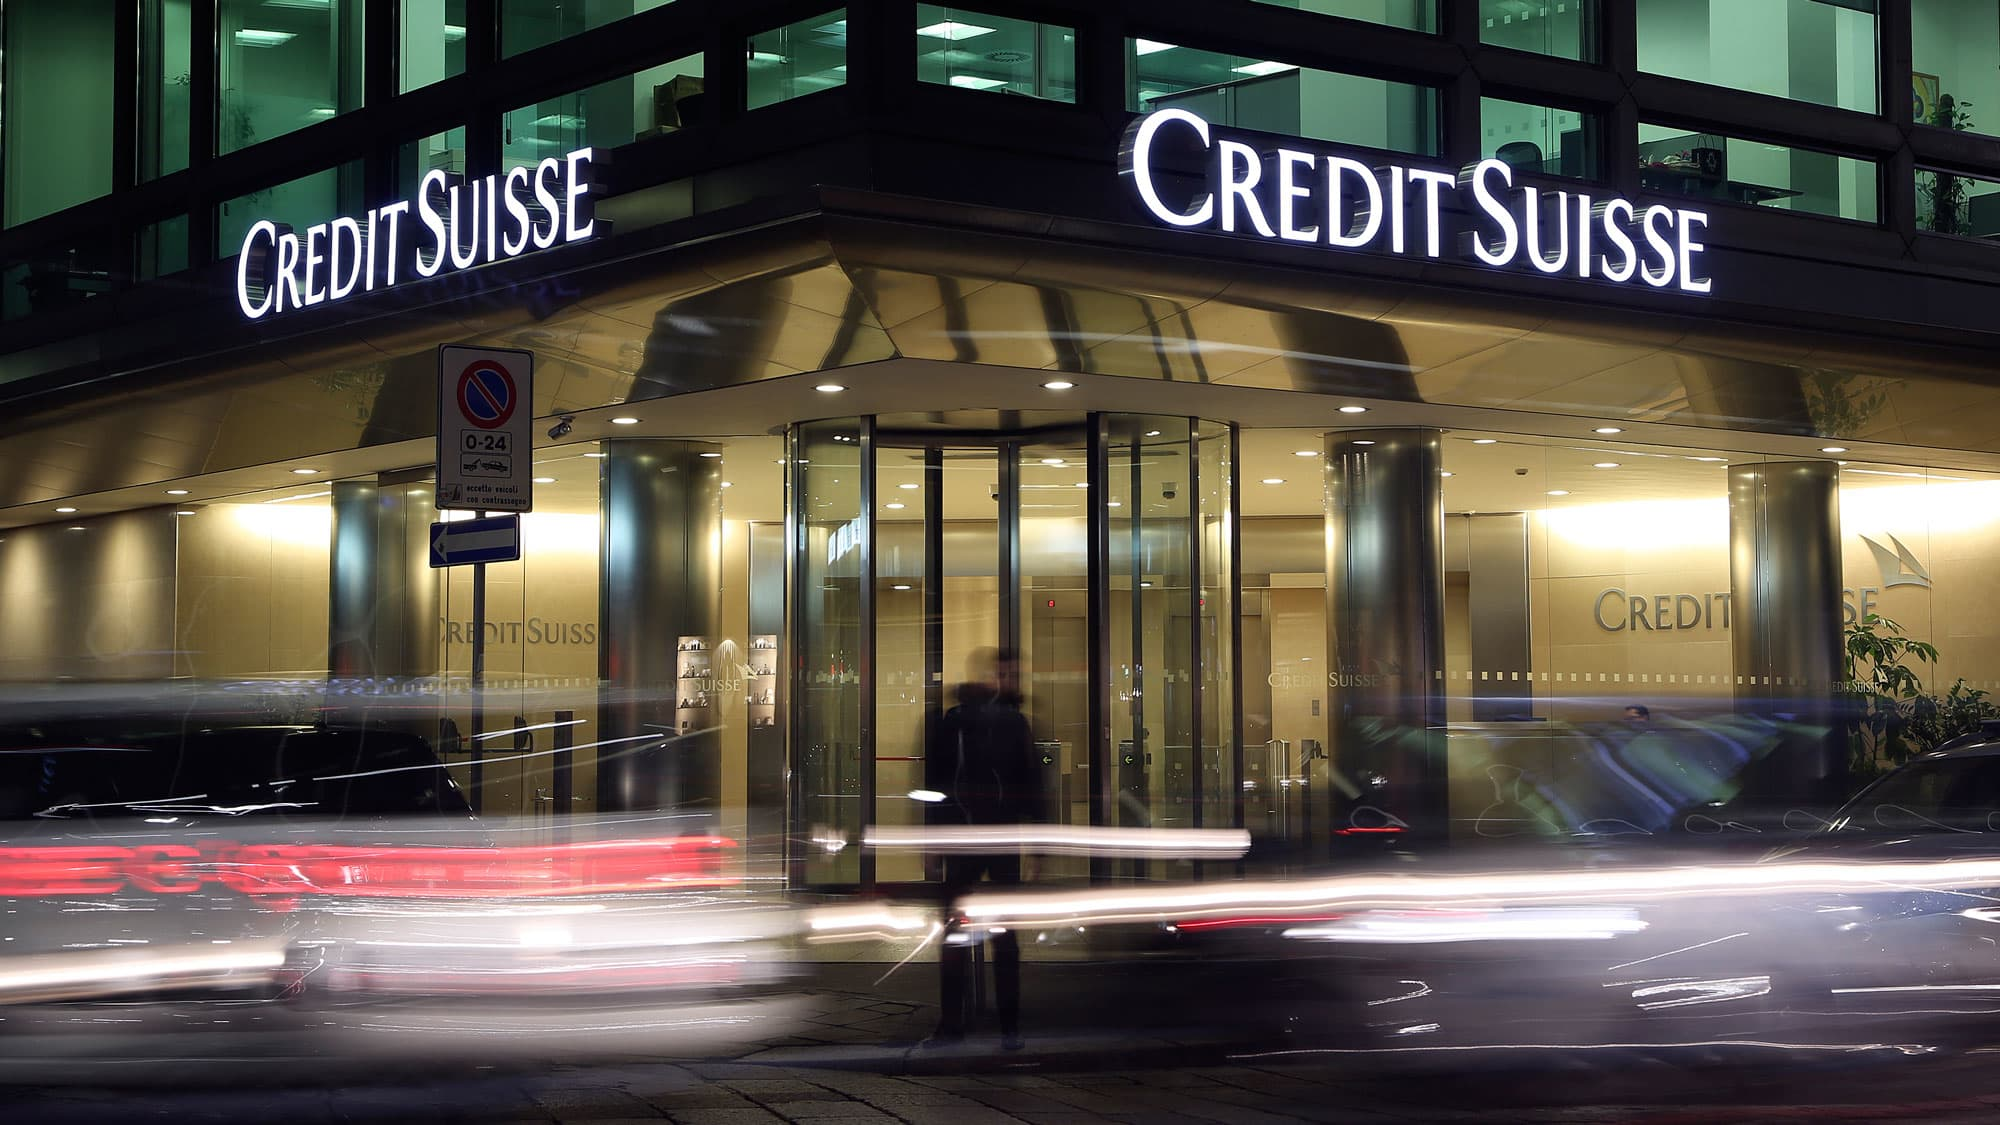 Credit Suisse is the sole bank tripped up by Fed stress test as rest get approval to boost payouts